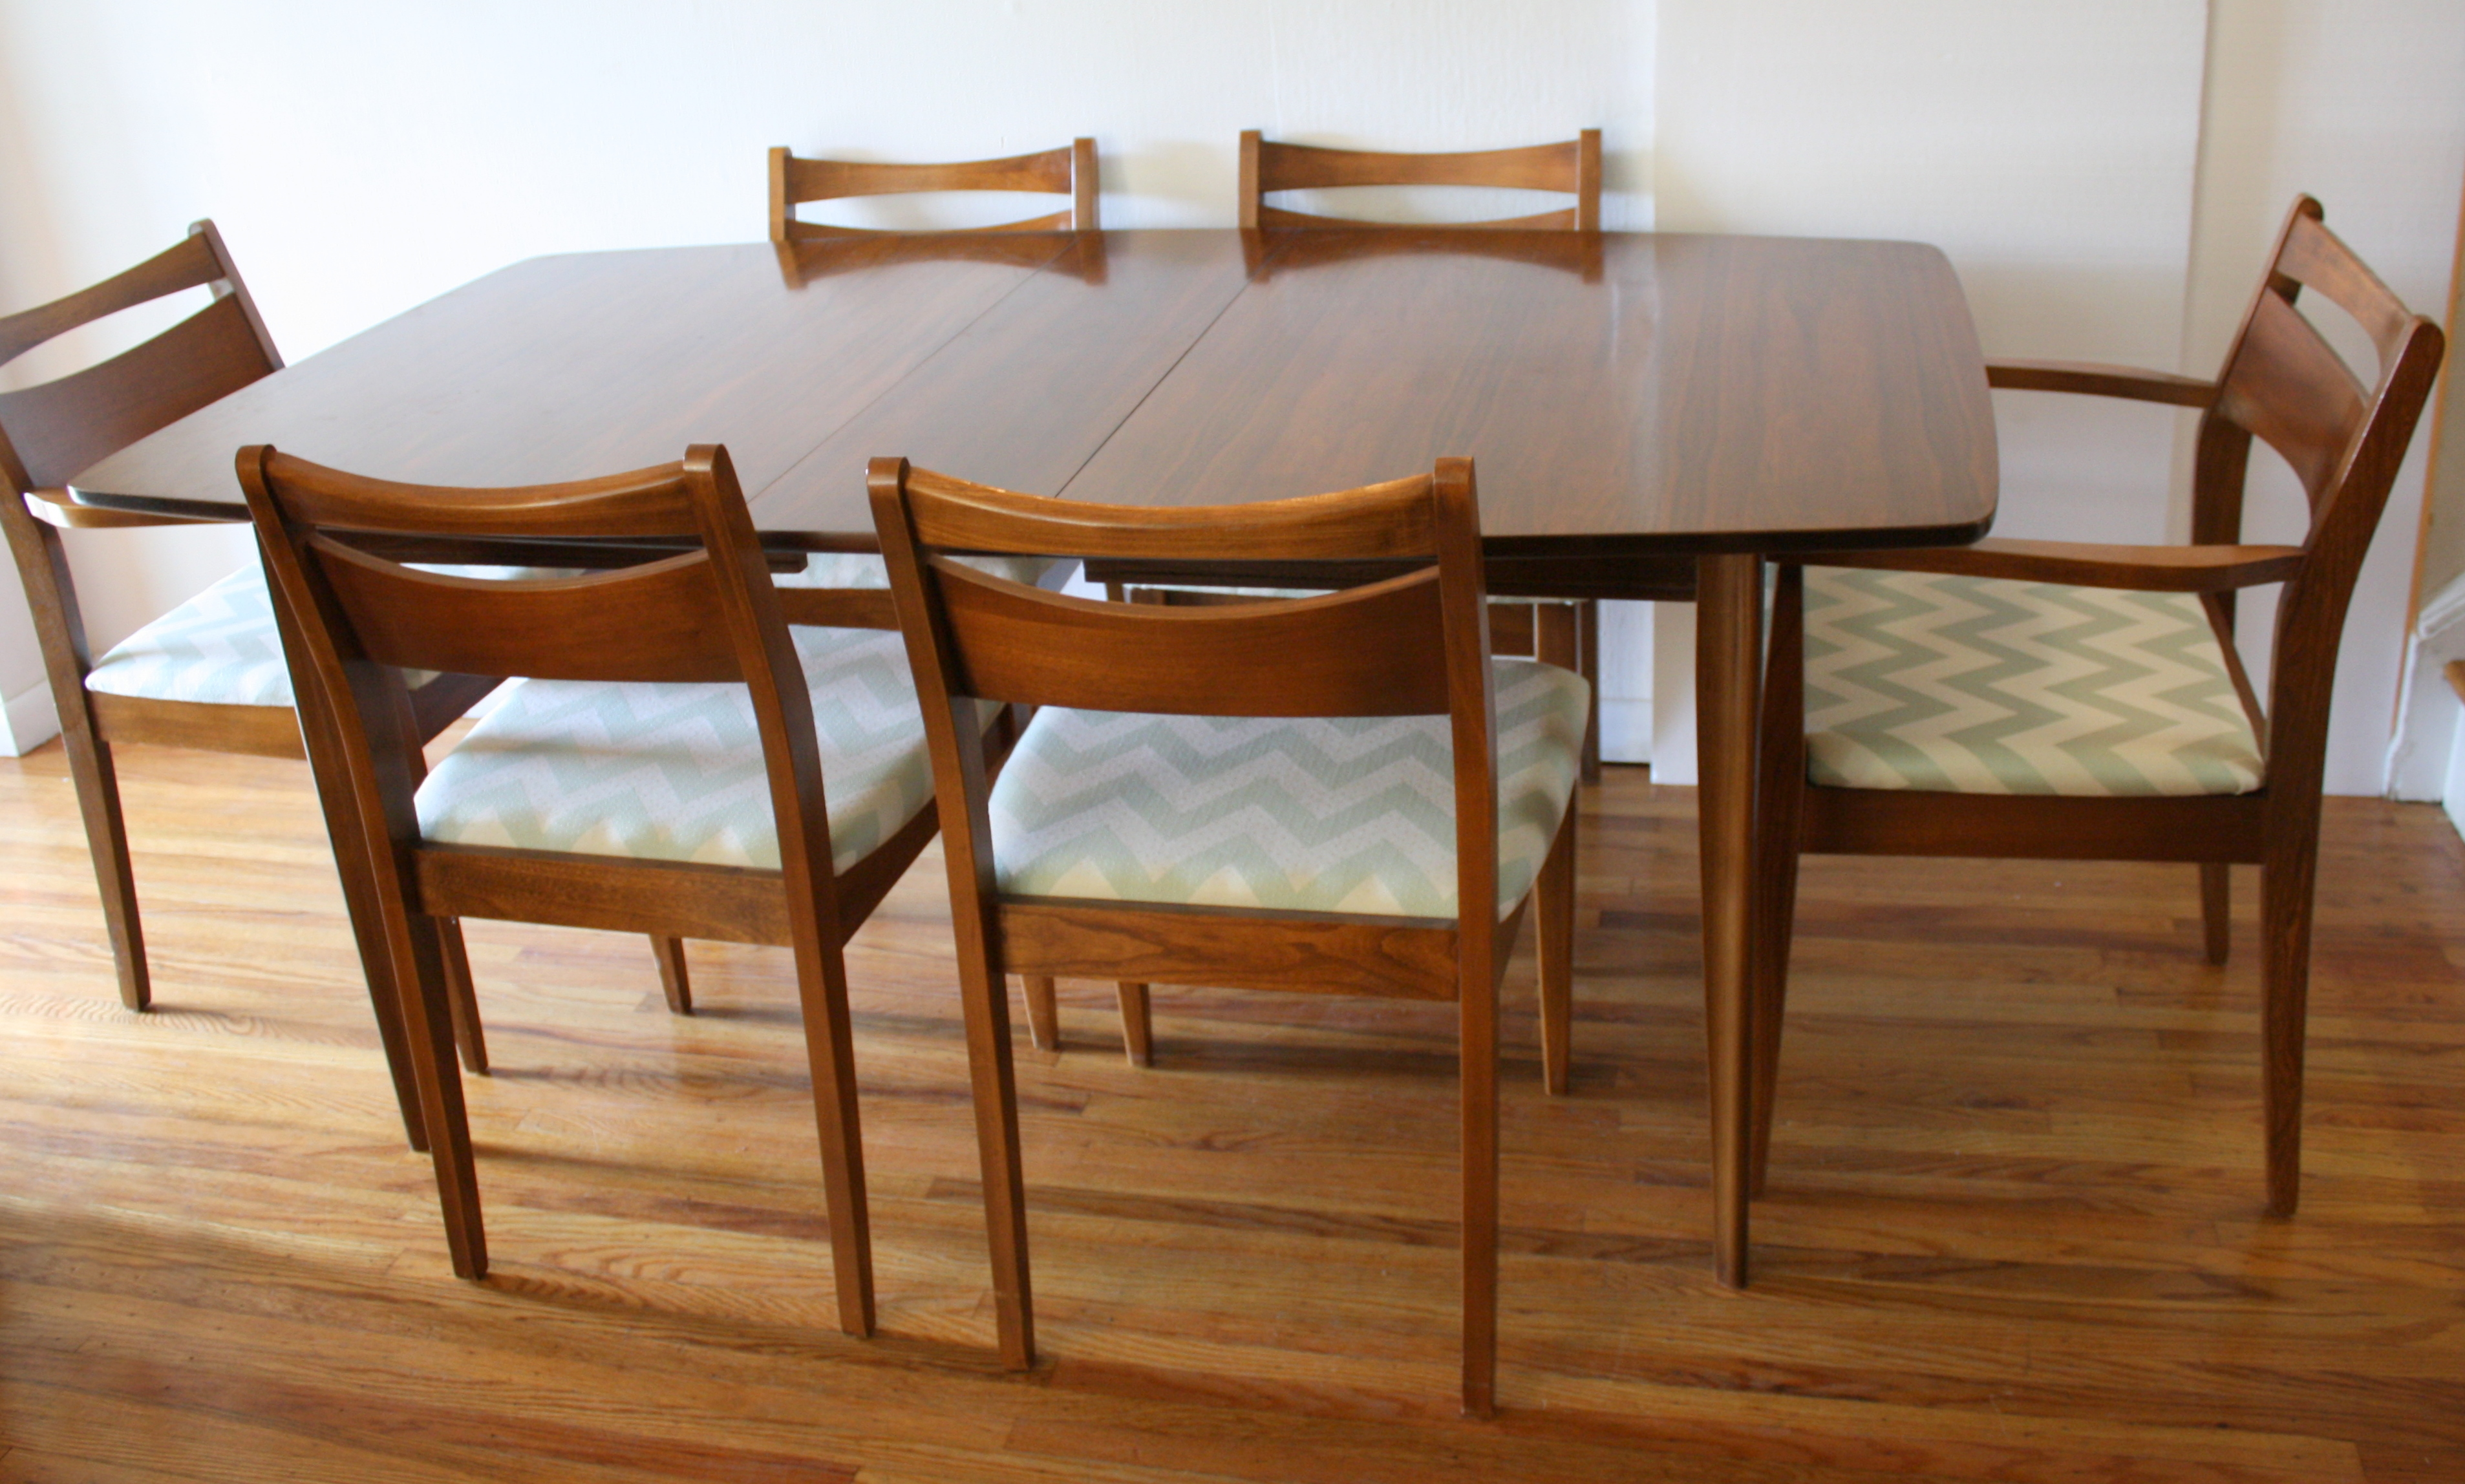 Modern Table Chairs Mid Century Modern Dining Chair Set And Broyhill Brasilia